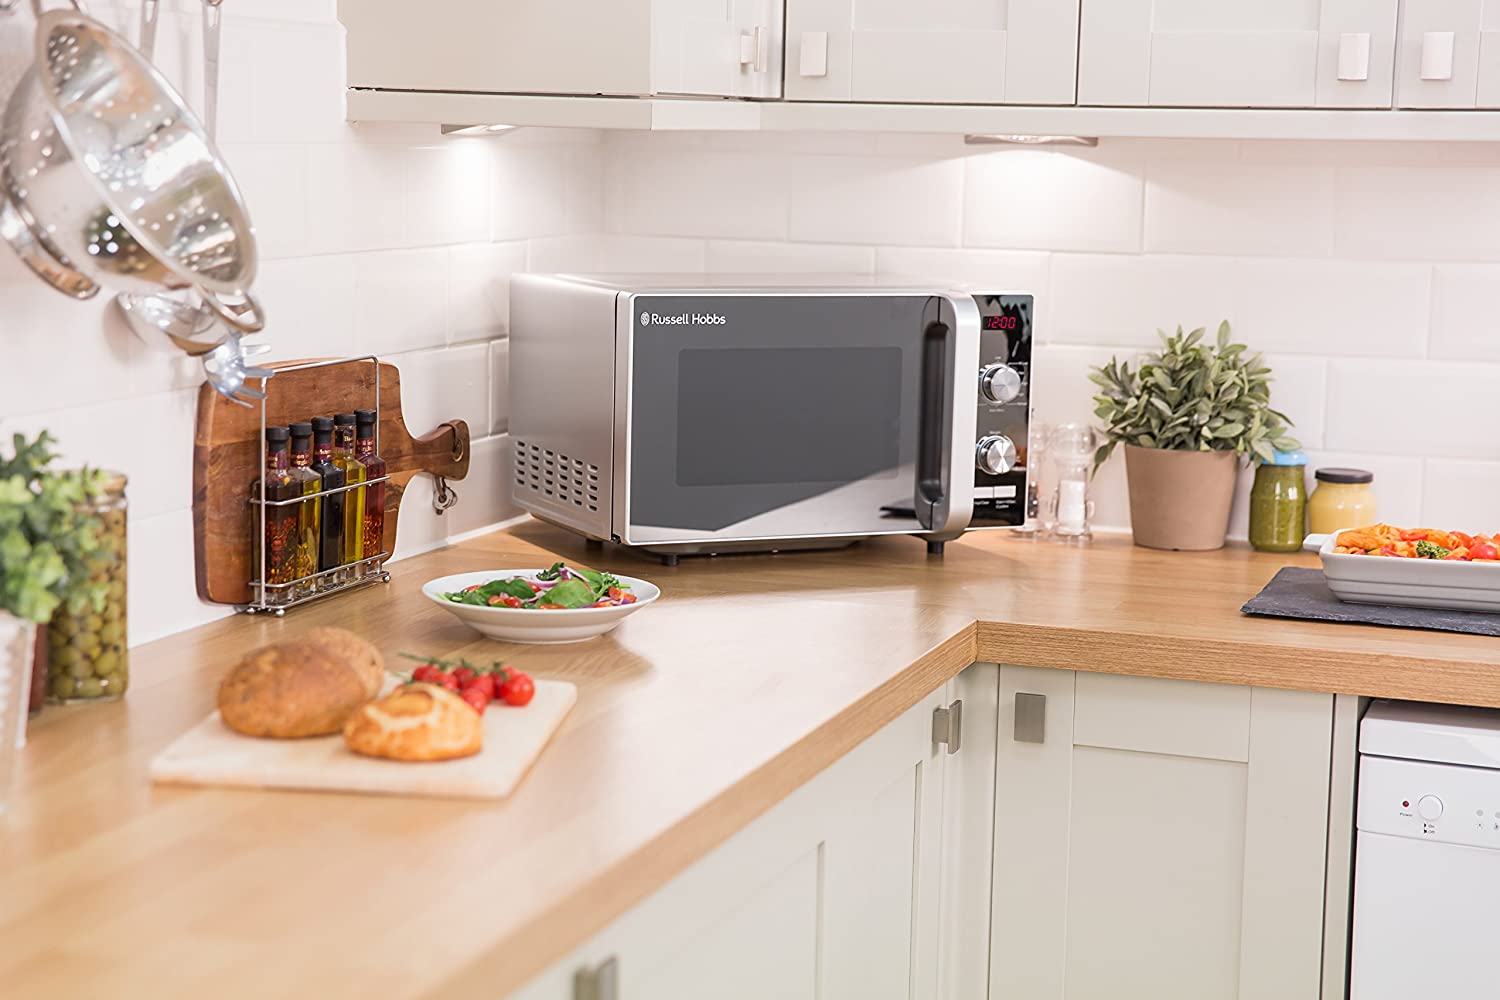 Energy Class D Russell Hobbs RHFM2001B Flatbed Microwave Black 19 Litre